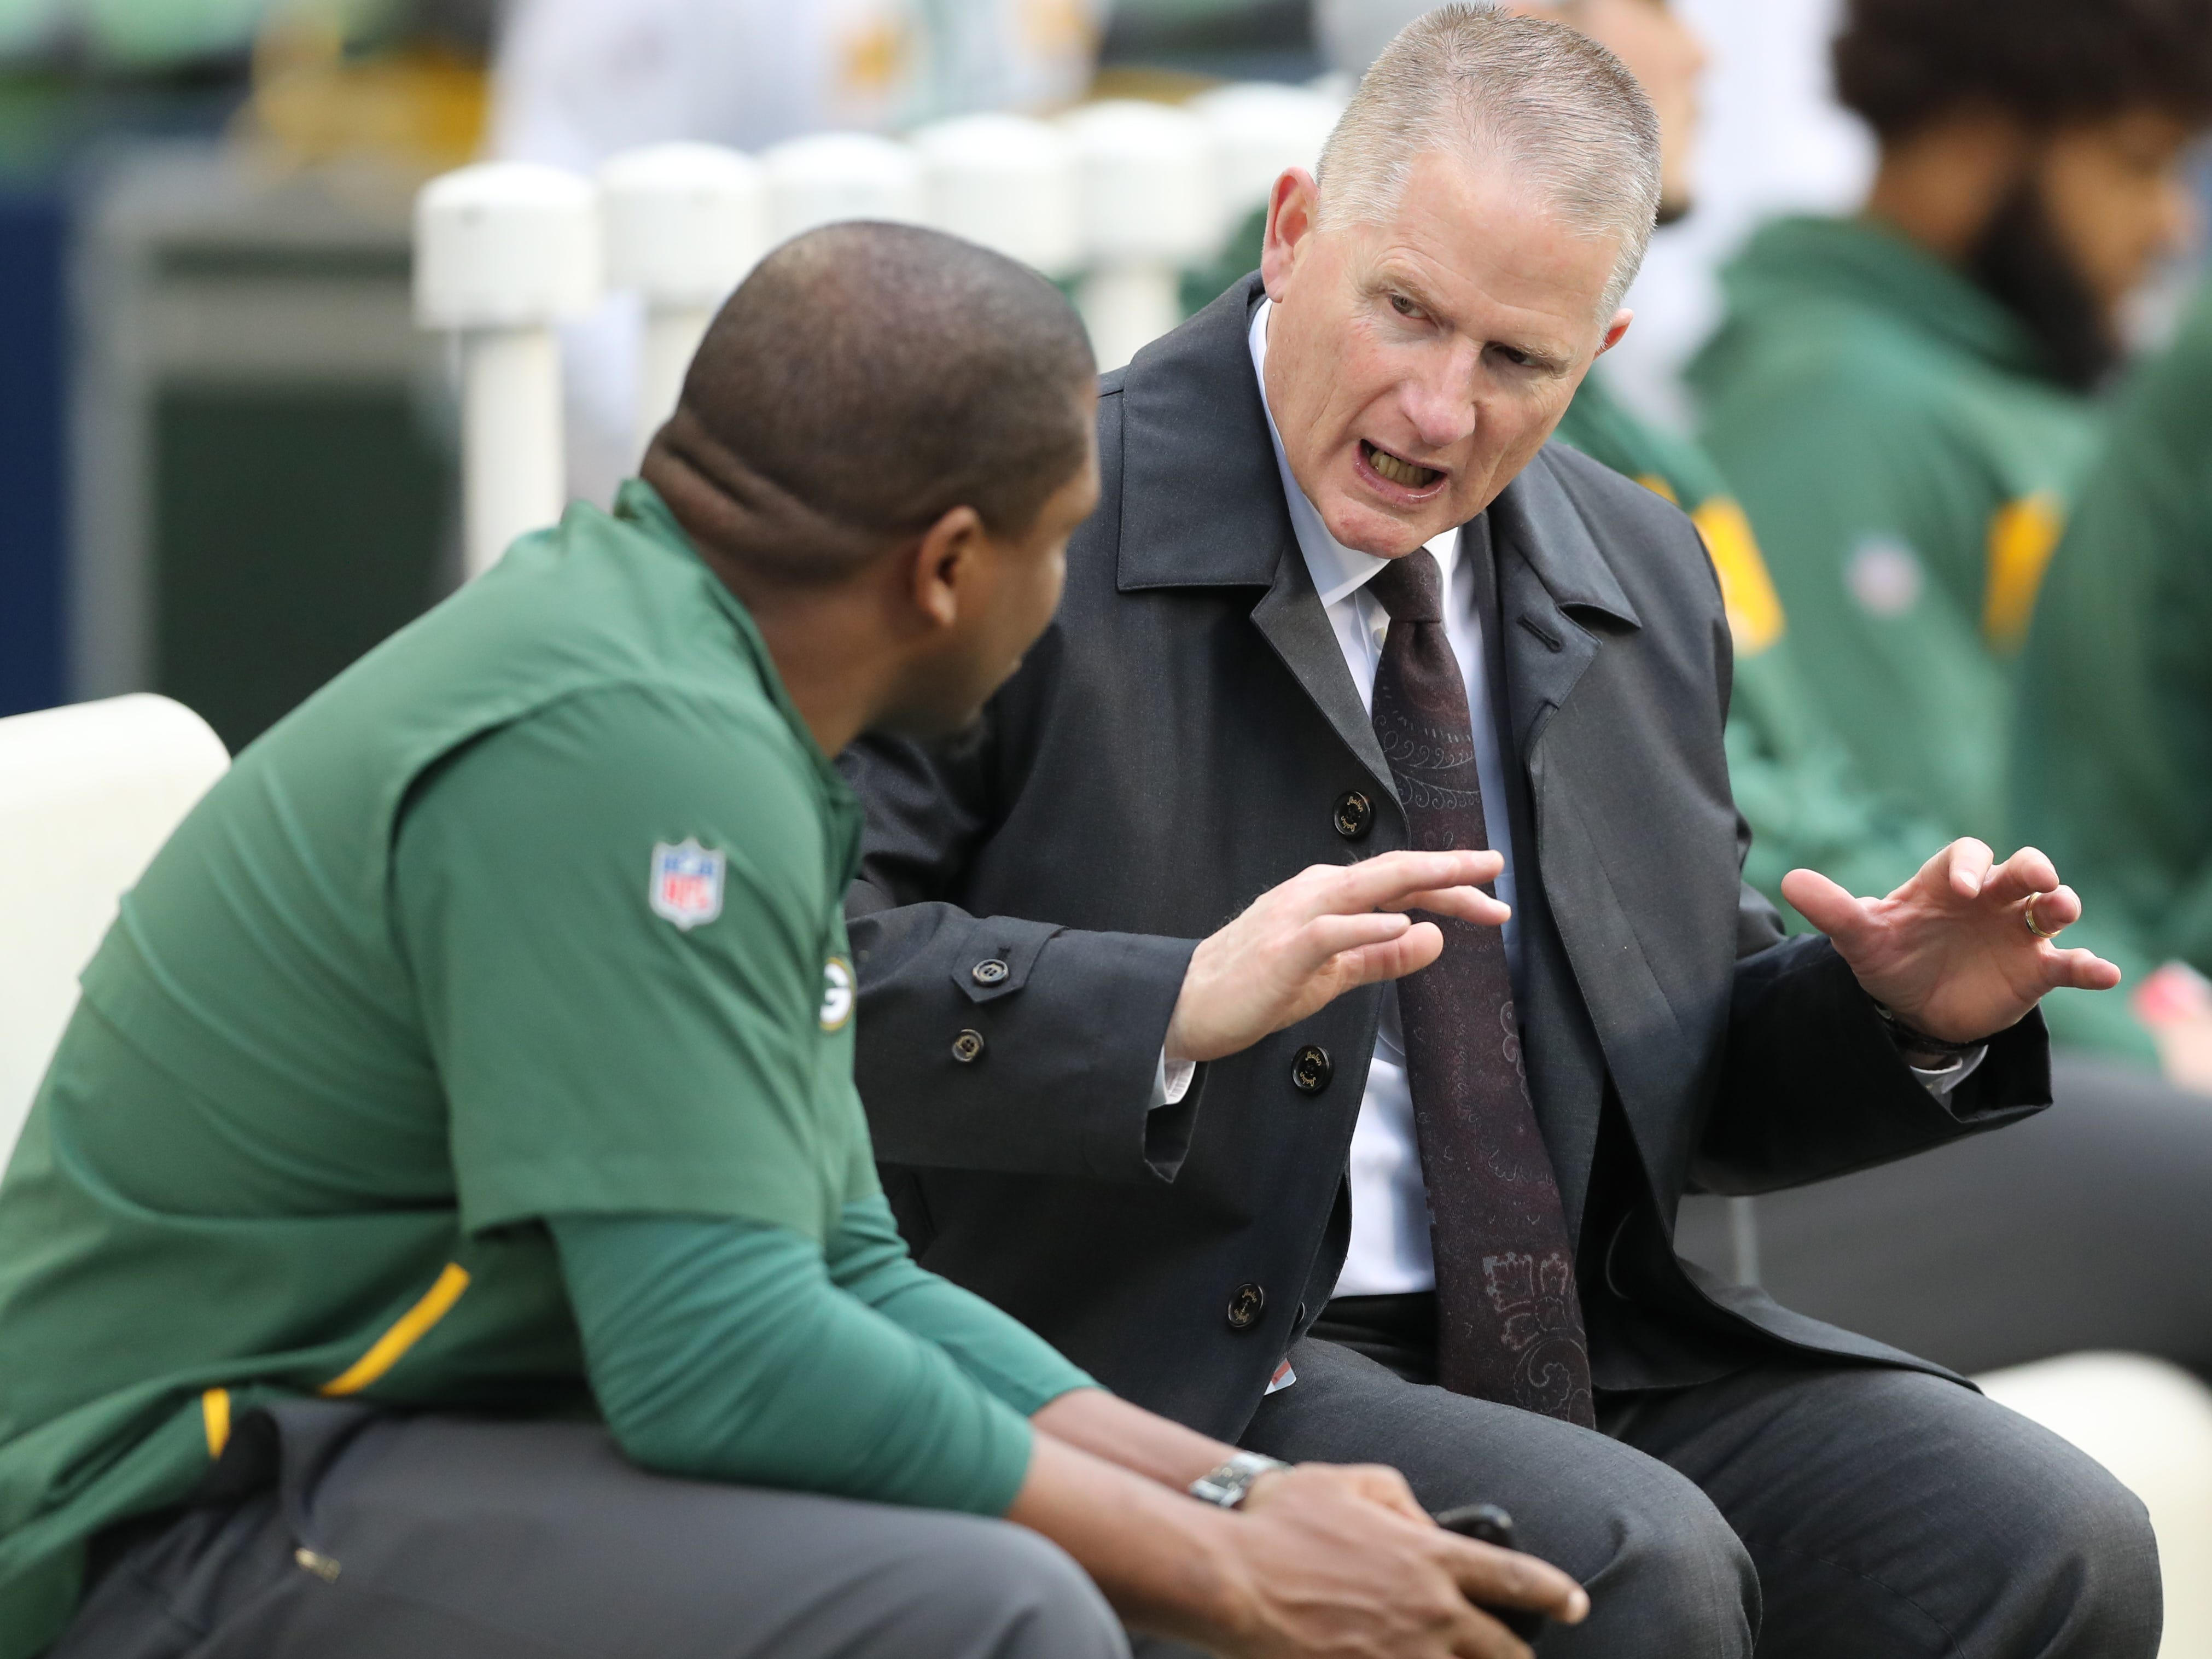 Packers Executive Vice President/Director of Football Operations Russ Ball talks with a Packers staff member on the sidelines before the game against the Seattle Seahawks at CenturyLink Field Thursday, November 15, 2018 in Seattle, WA.